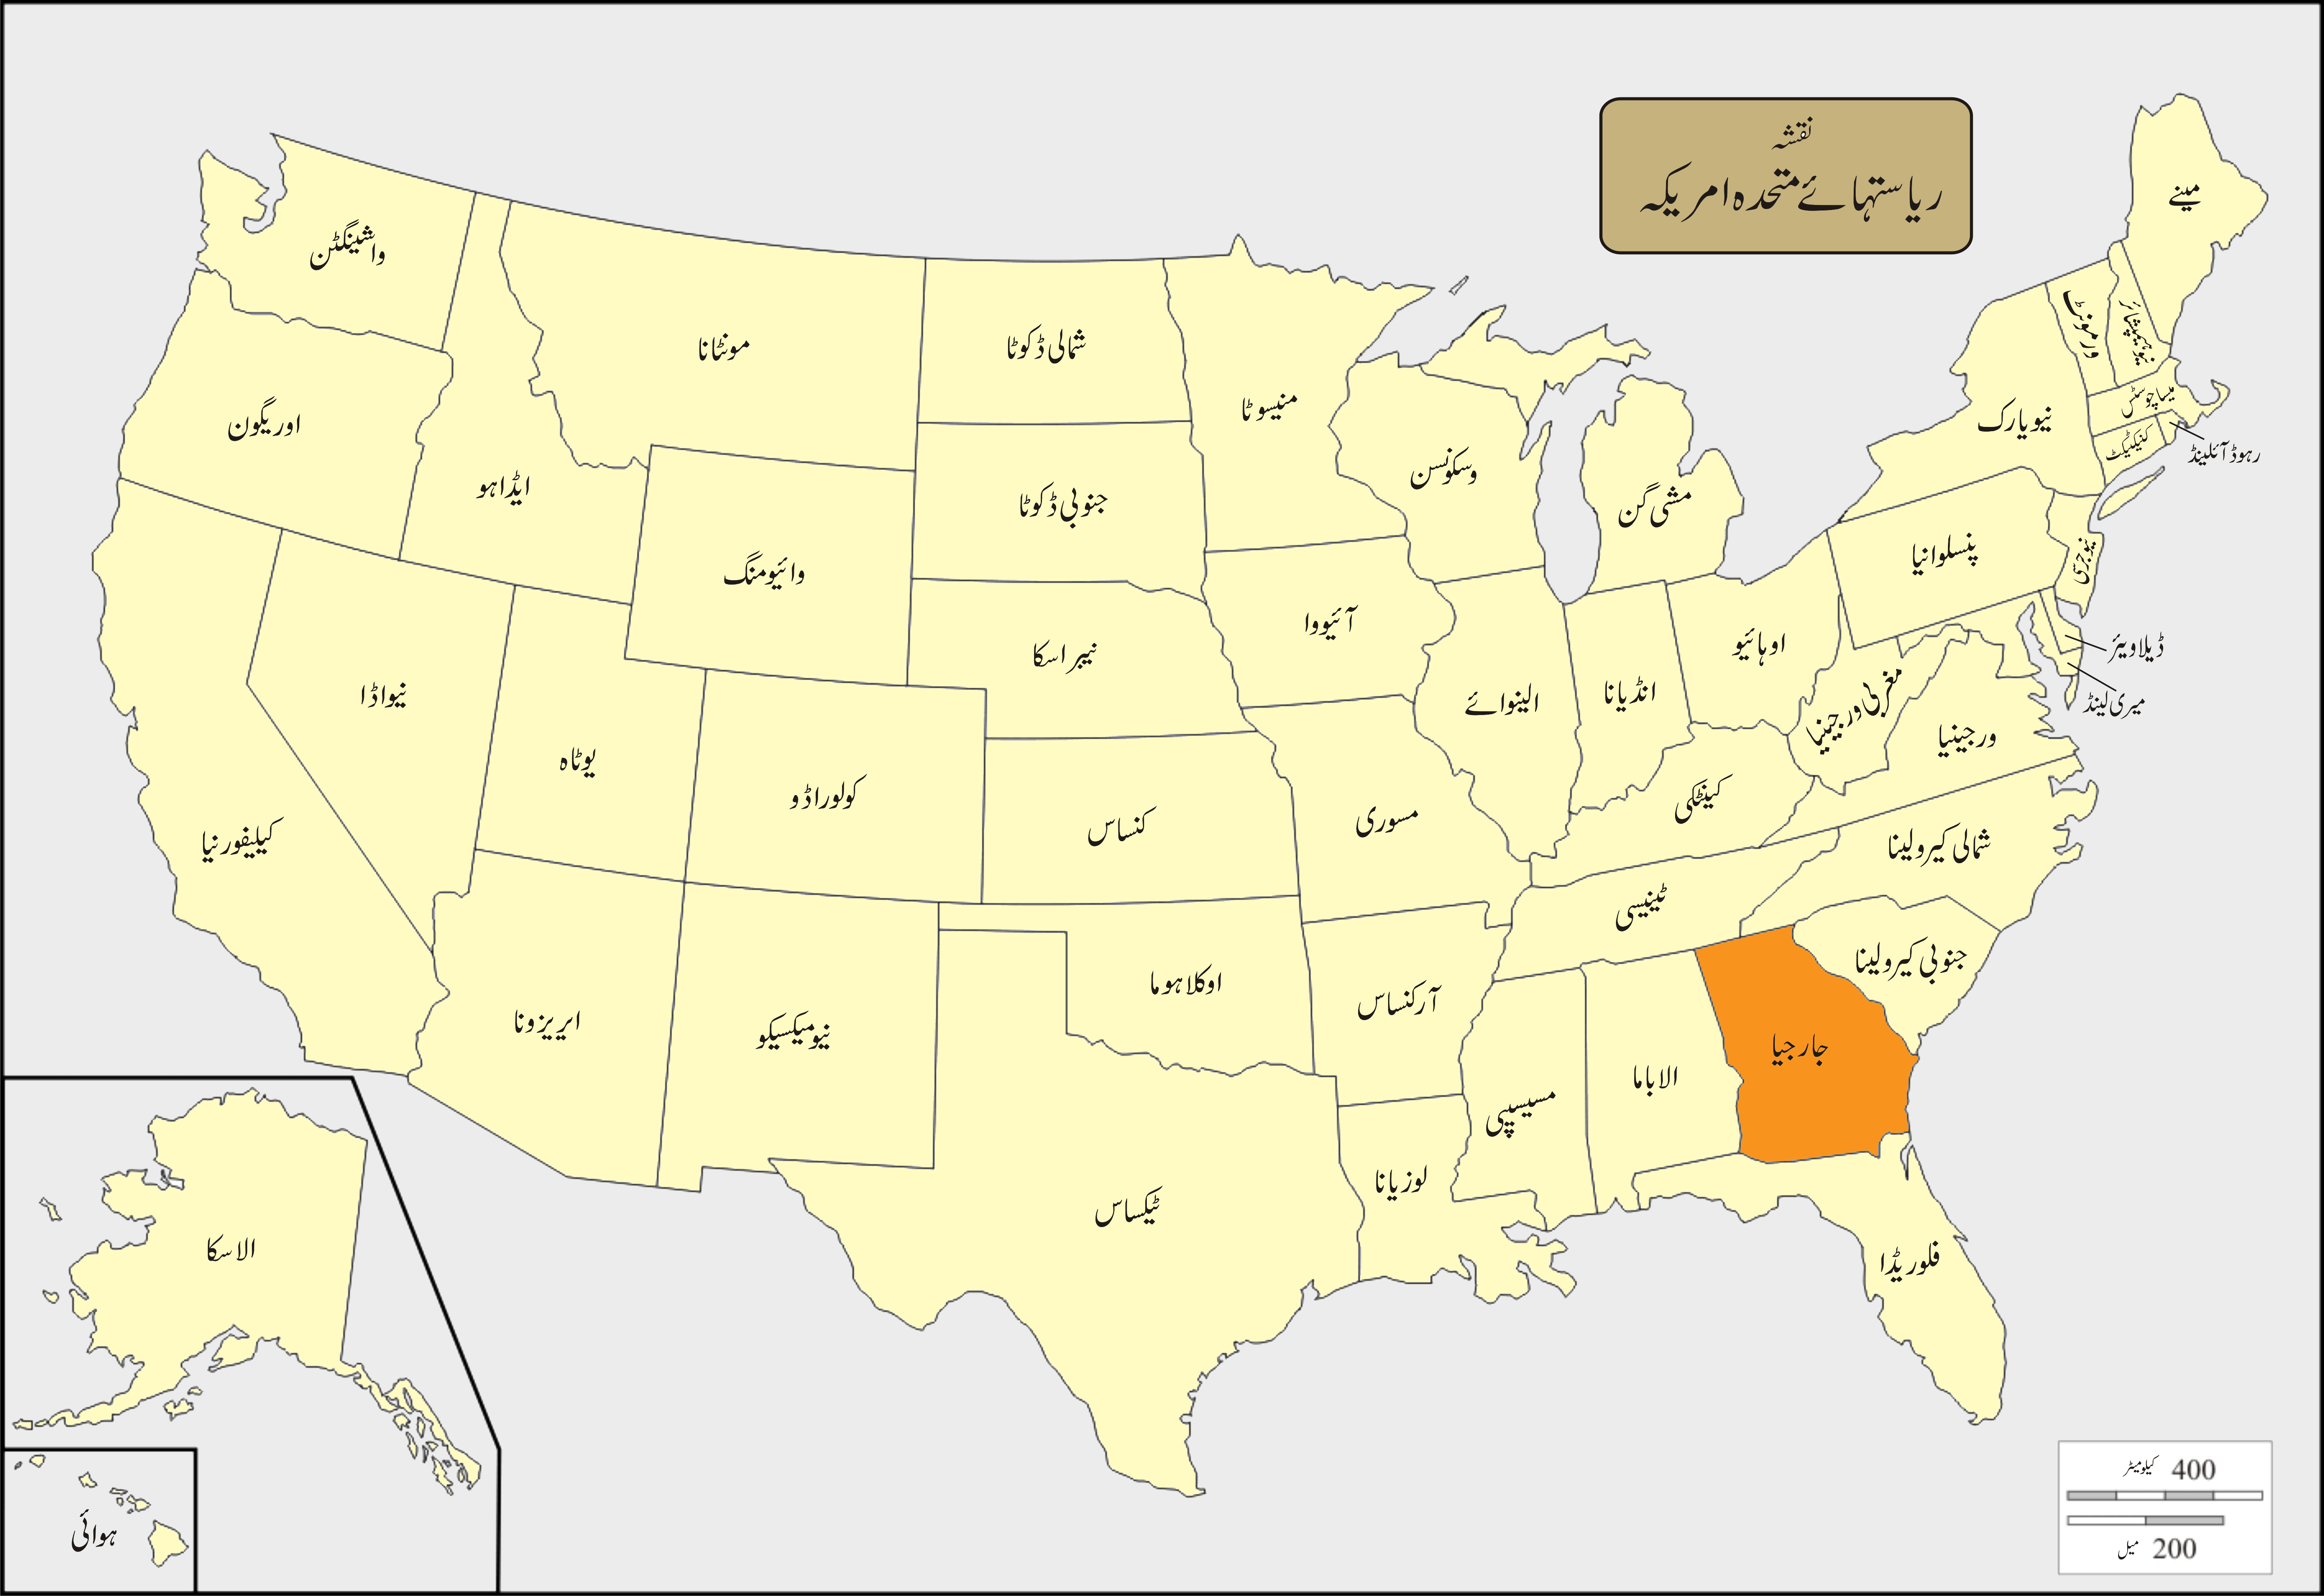 rhode island map with File Usa Names Georgia on Wisconsin Lpn Requirements And Training Programs furthermore OoWa Crawford Street Foot Bridge Providence Rhode Island also Minnesota Lpn Requirements And Training Programs additionally 2517667278 together with 6375034471.